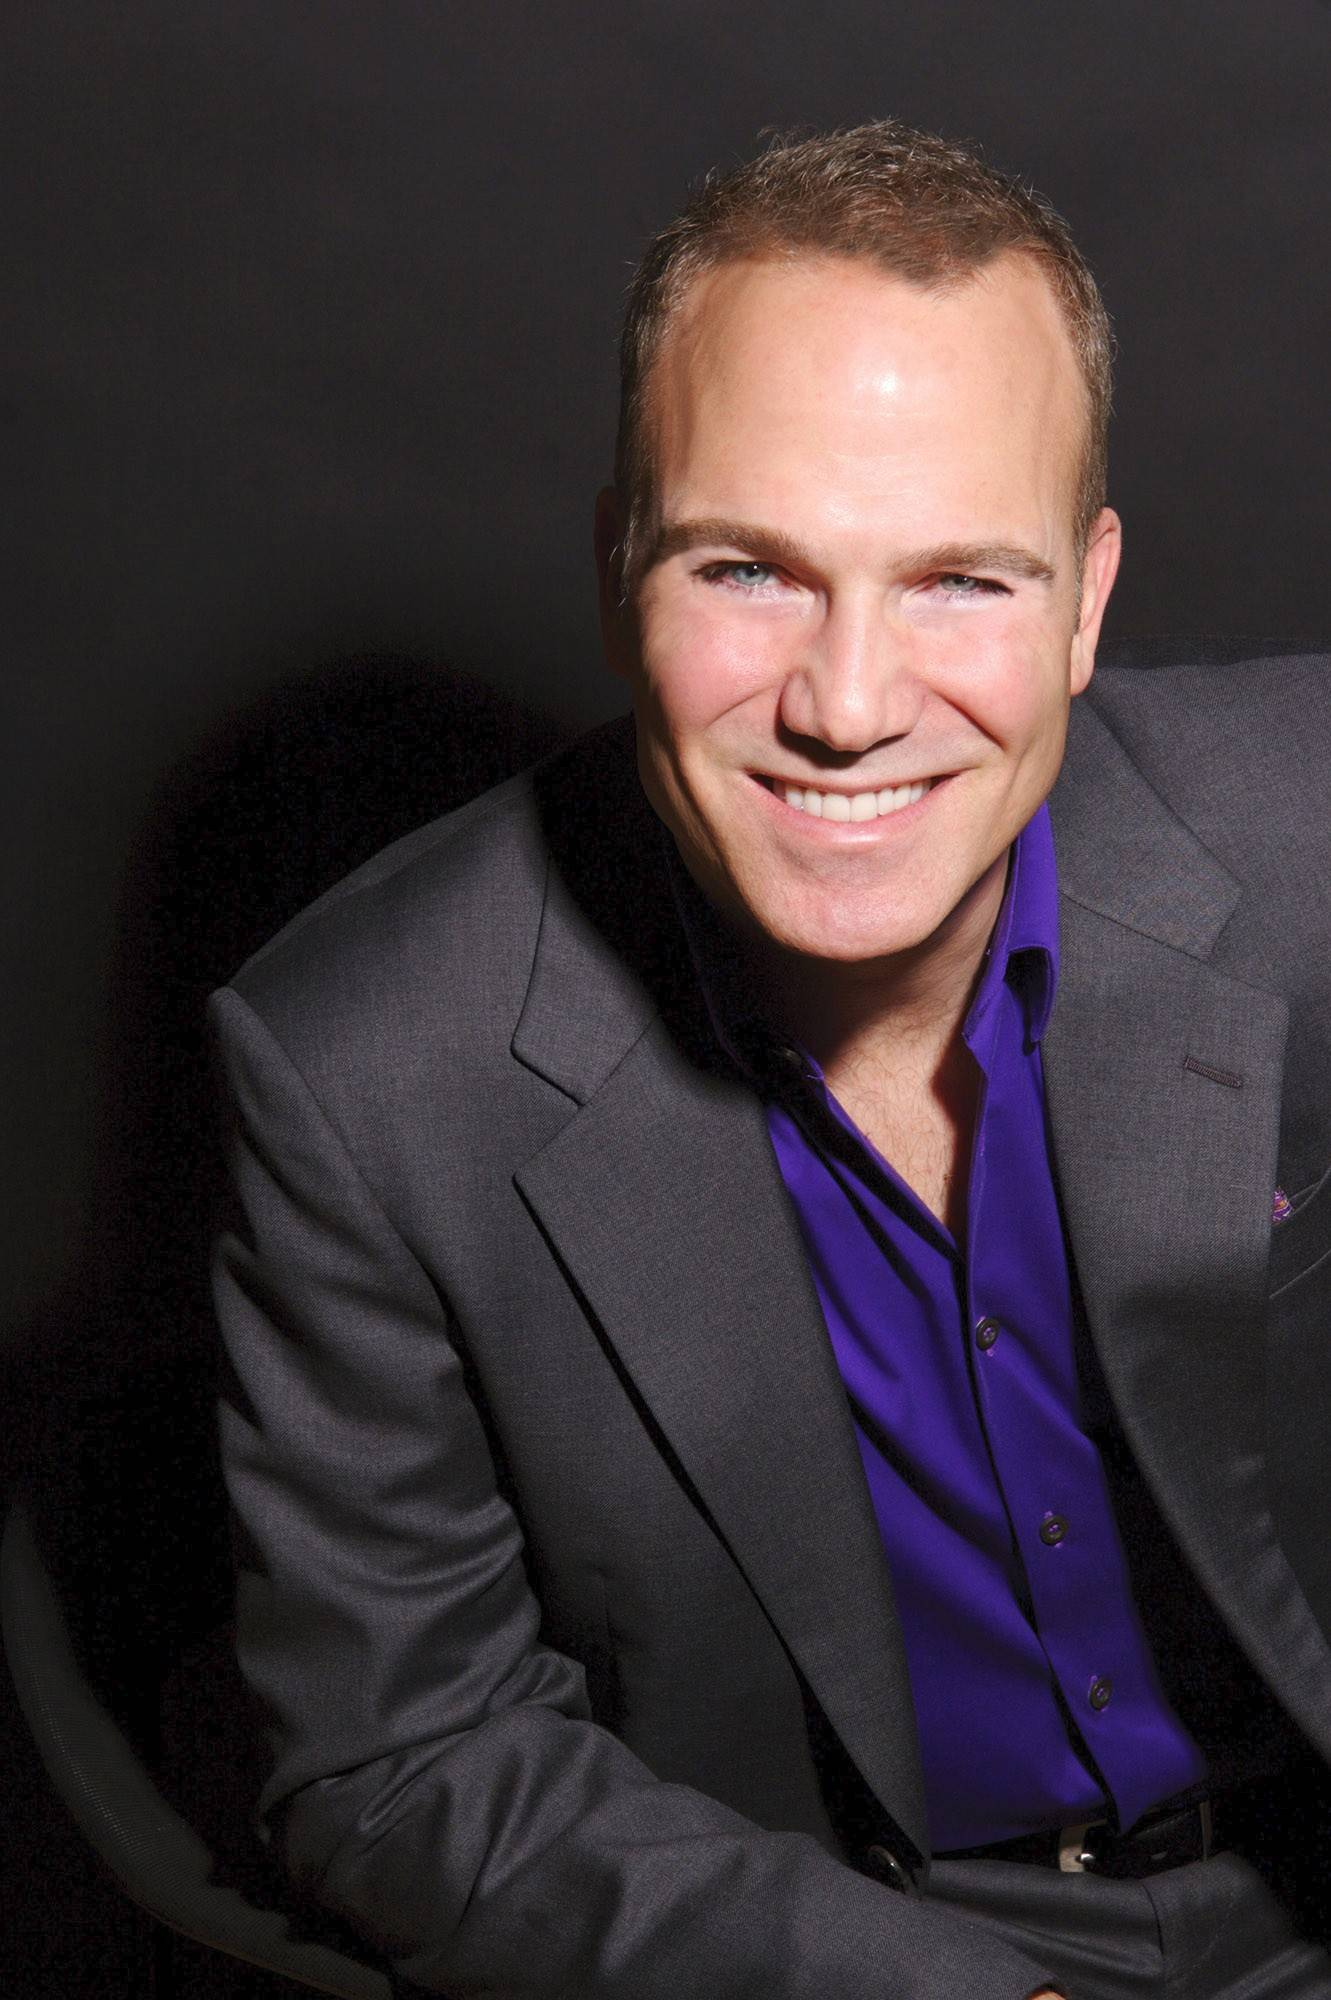 Crooner Franc D'Ambrosio sings Hollywood tunes at the Arcada Theatre in St. Charles on Friday, April 4.